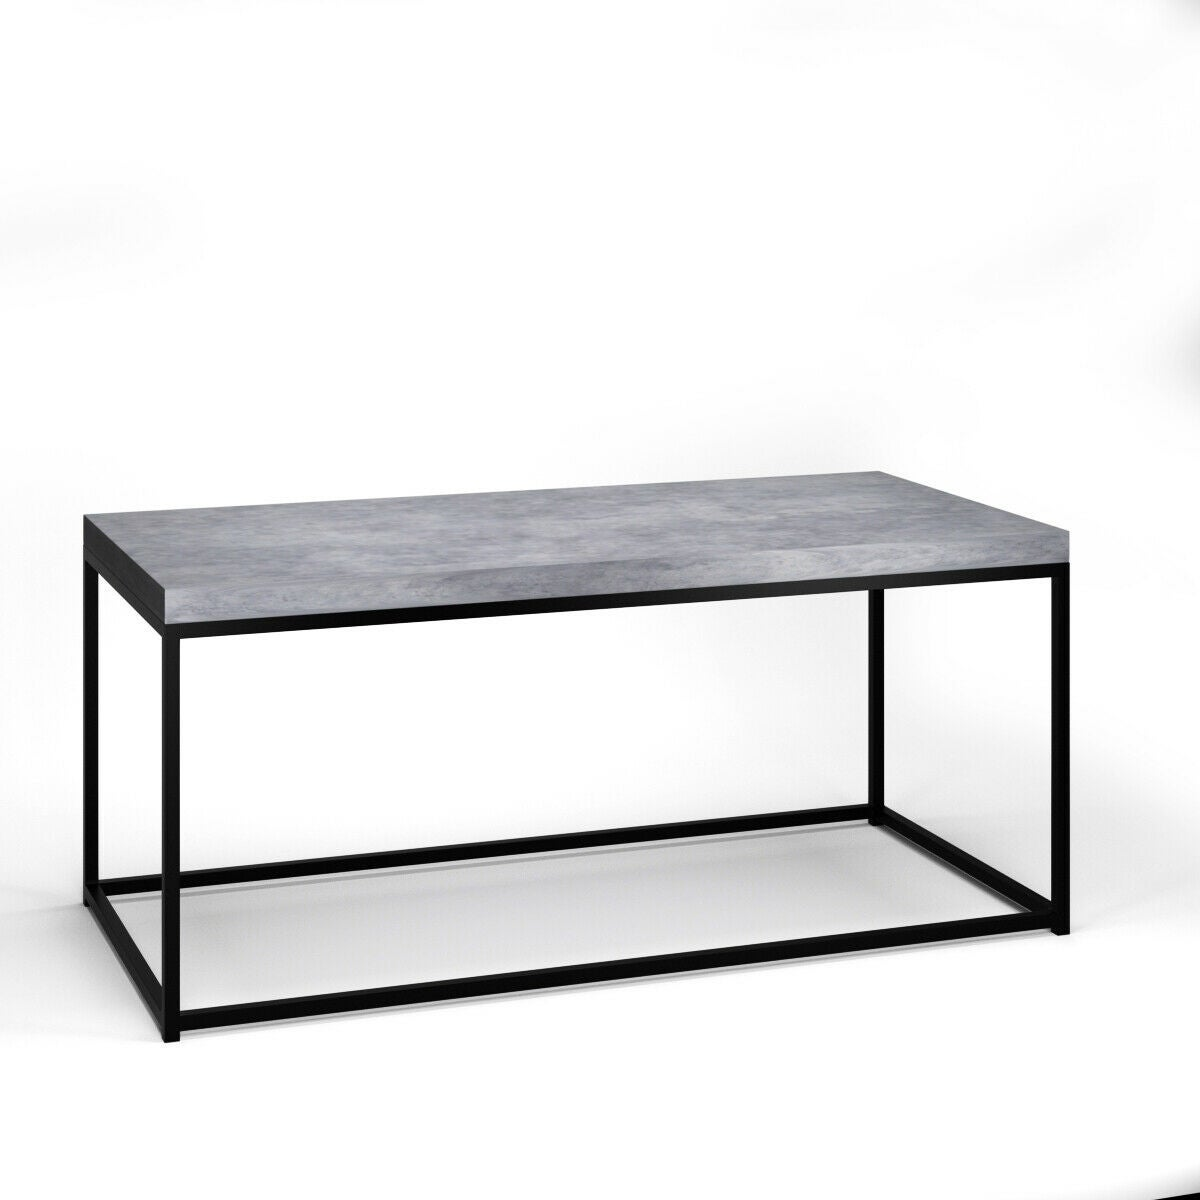 Gymax Modern Rectangular Tail Coffee Table Metal Frame Living Room Furniture Black And Cement